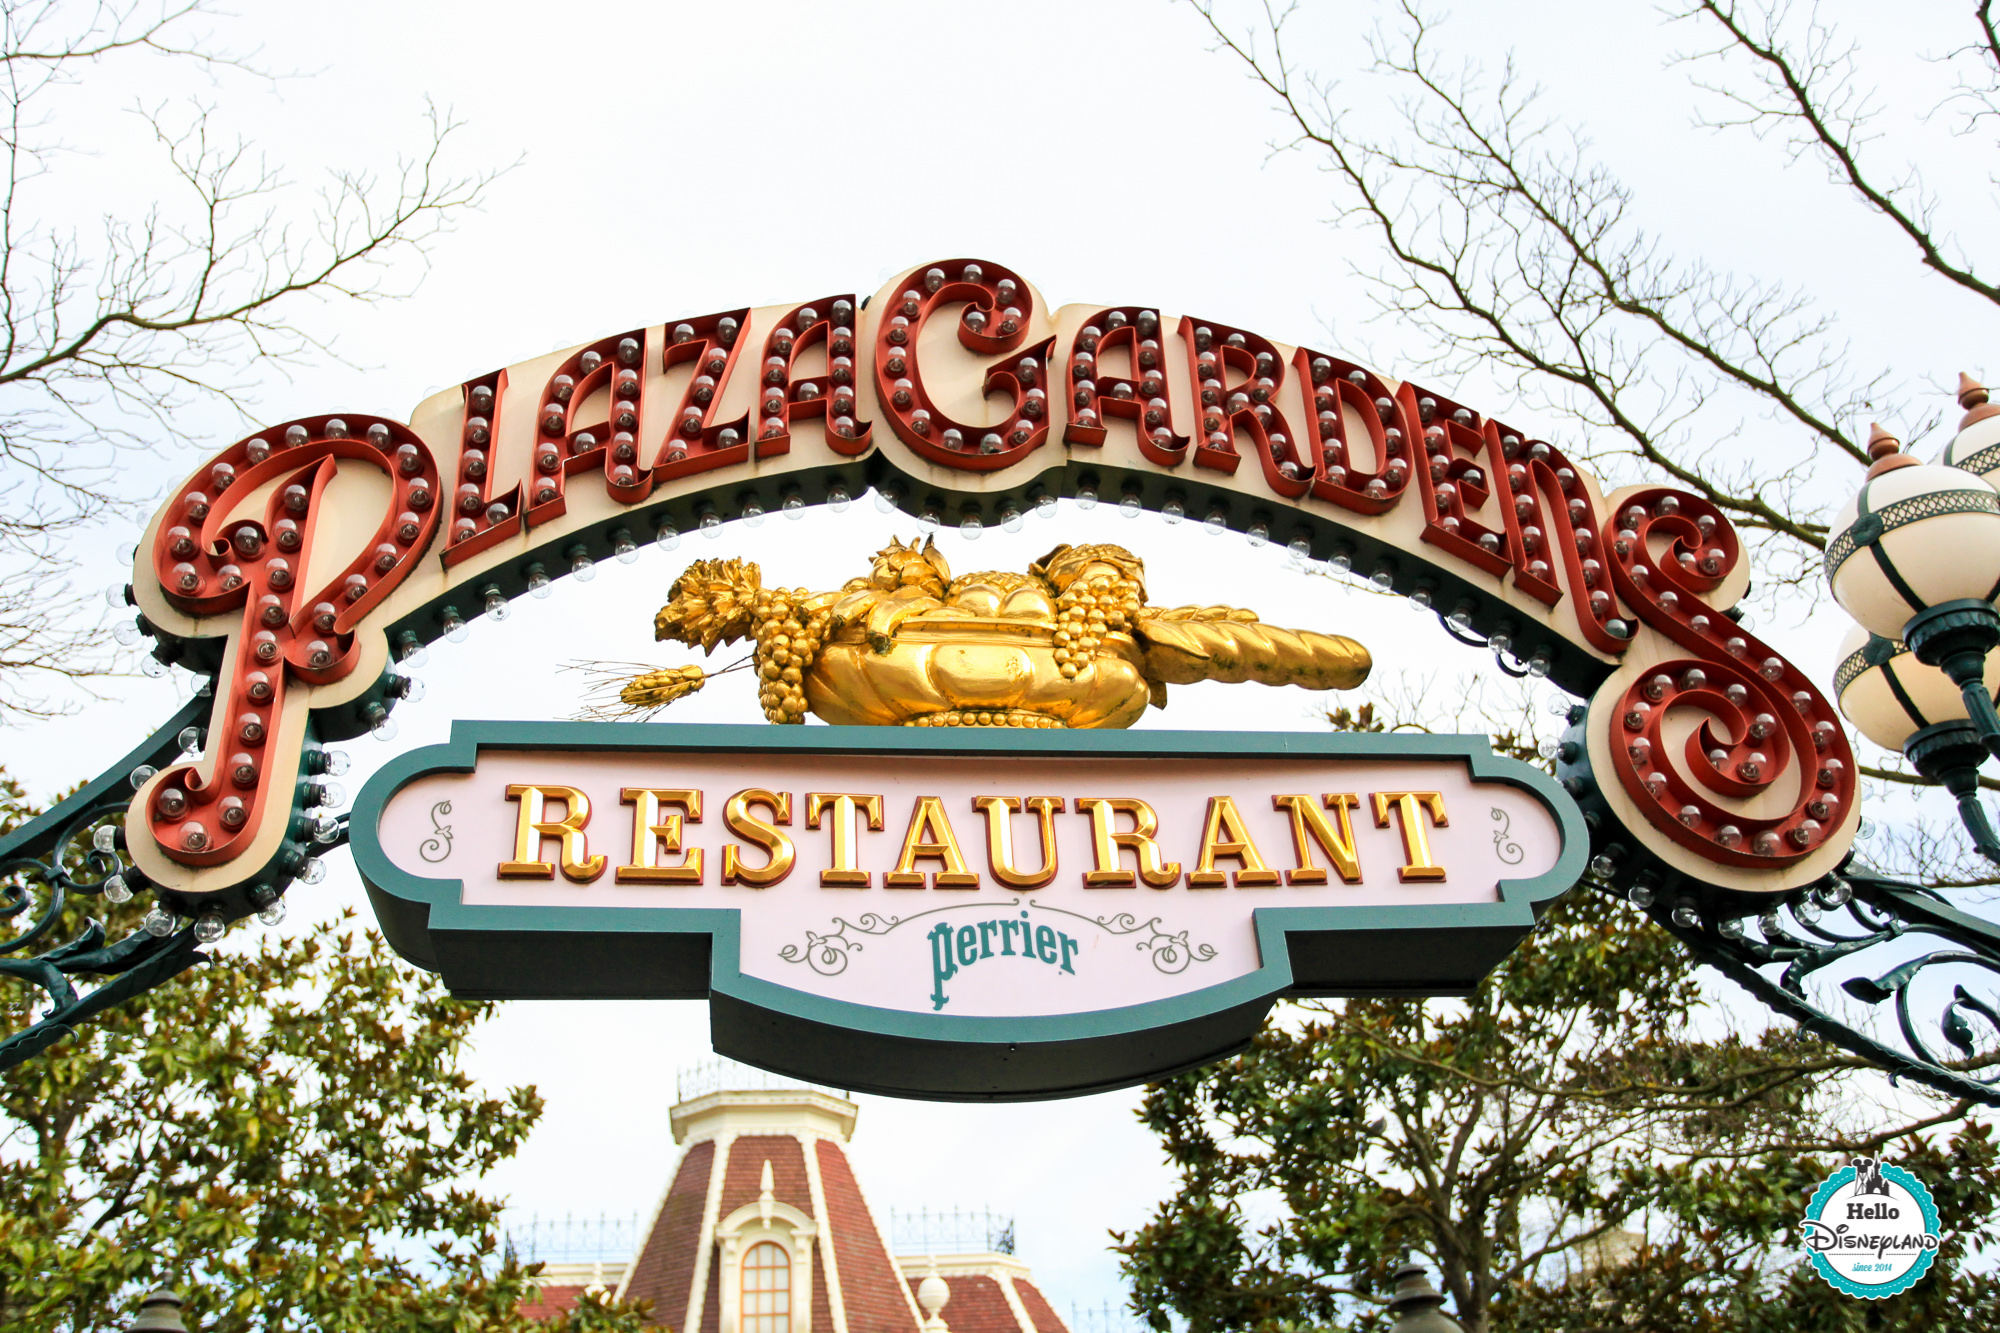 plaza gardens restaurant hello disneyland le blog n 1 sur disneyland paris. Black Bedroom Furniture Sets. Home Design Ideas